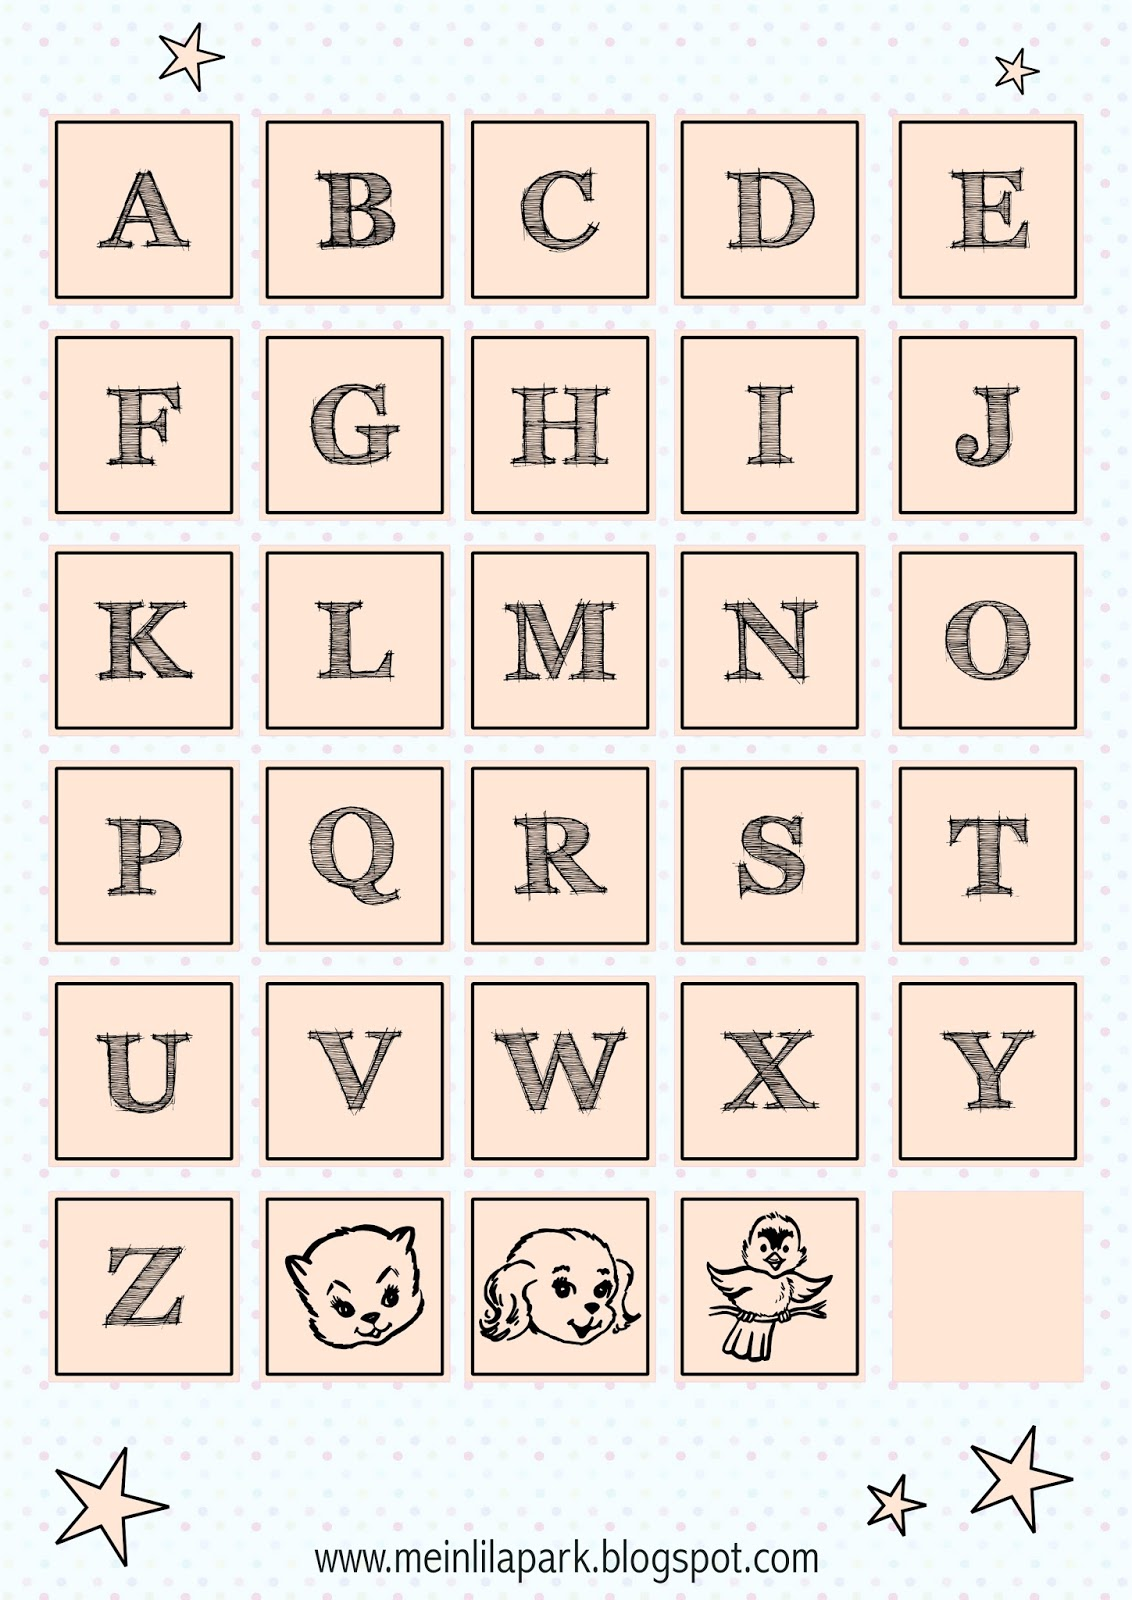 It is an image of Candid Free Printable Alphabet